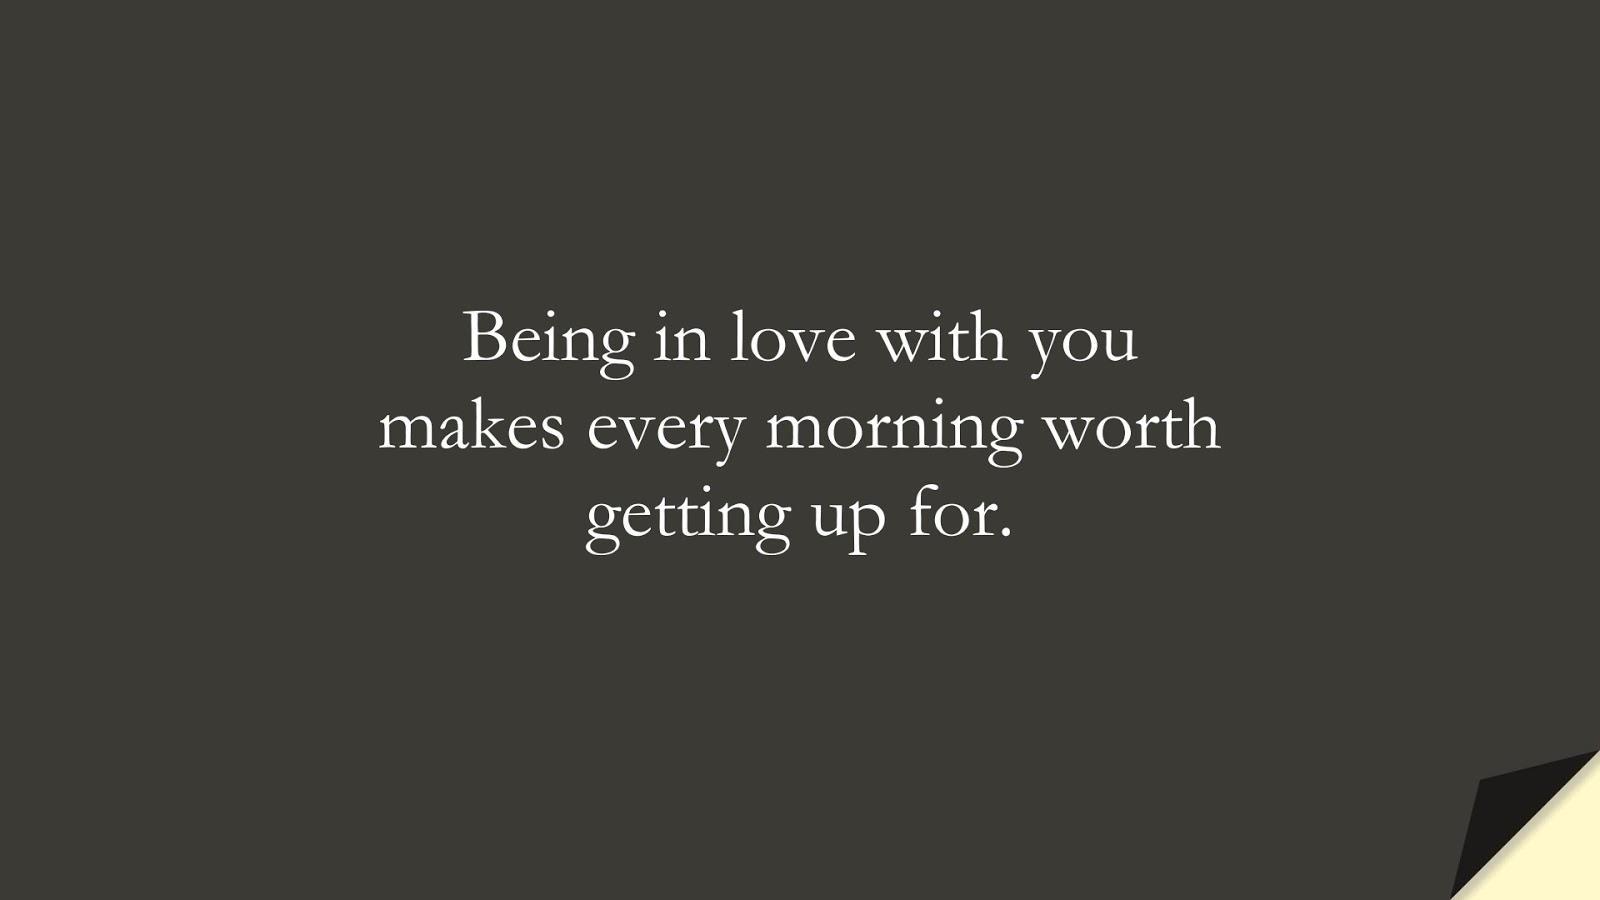 Being in love with you makes every morning worth getting up for.FALSE